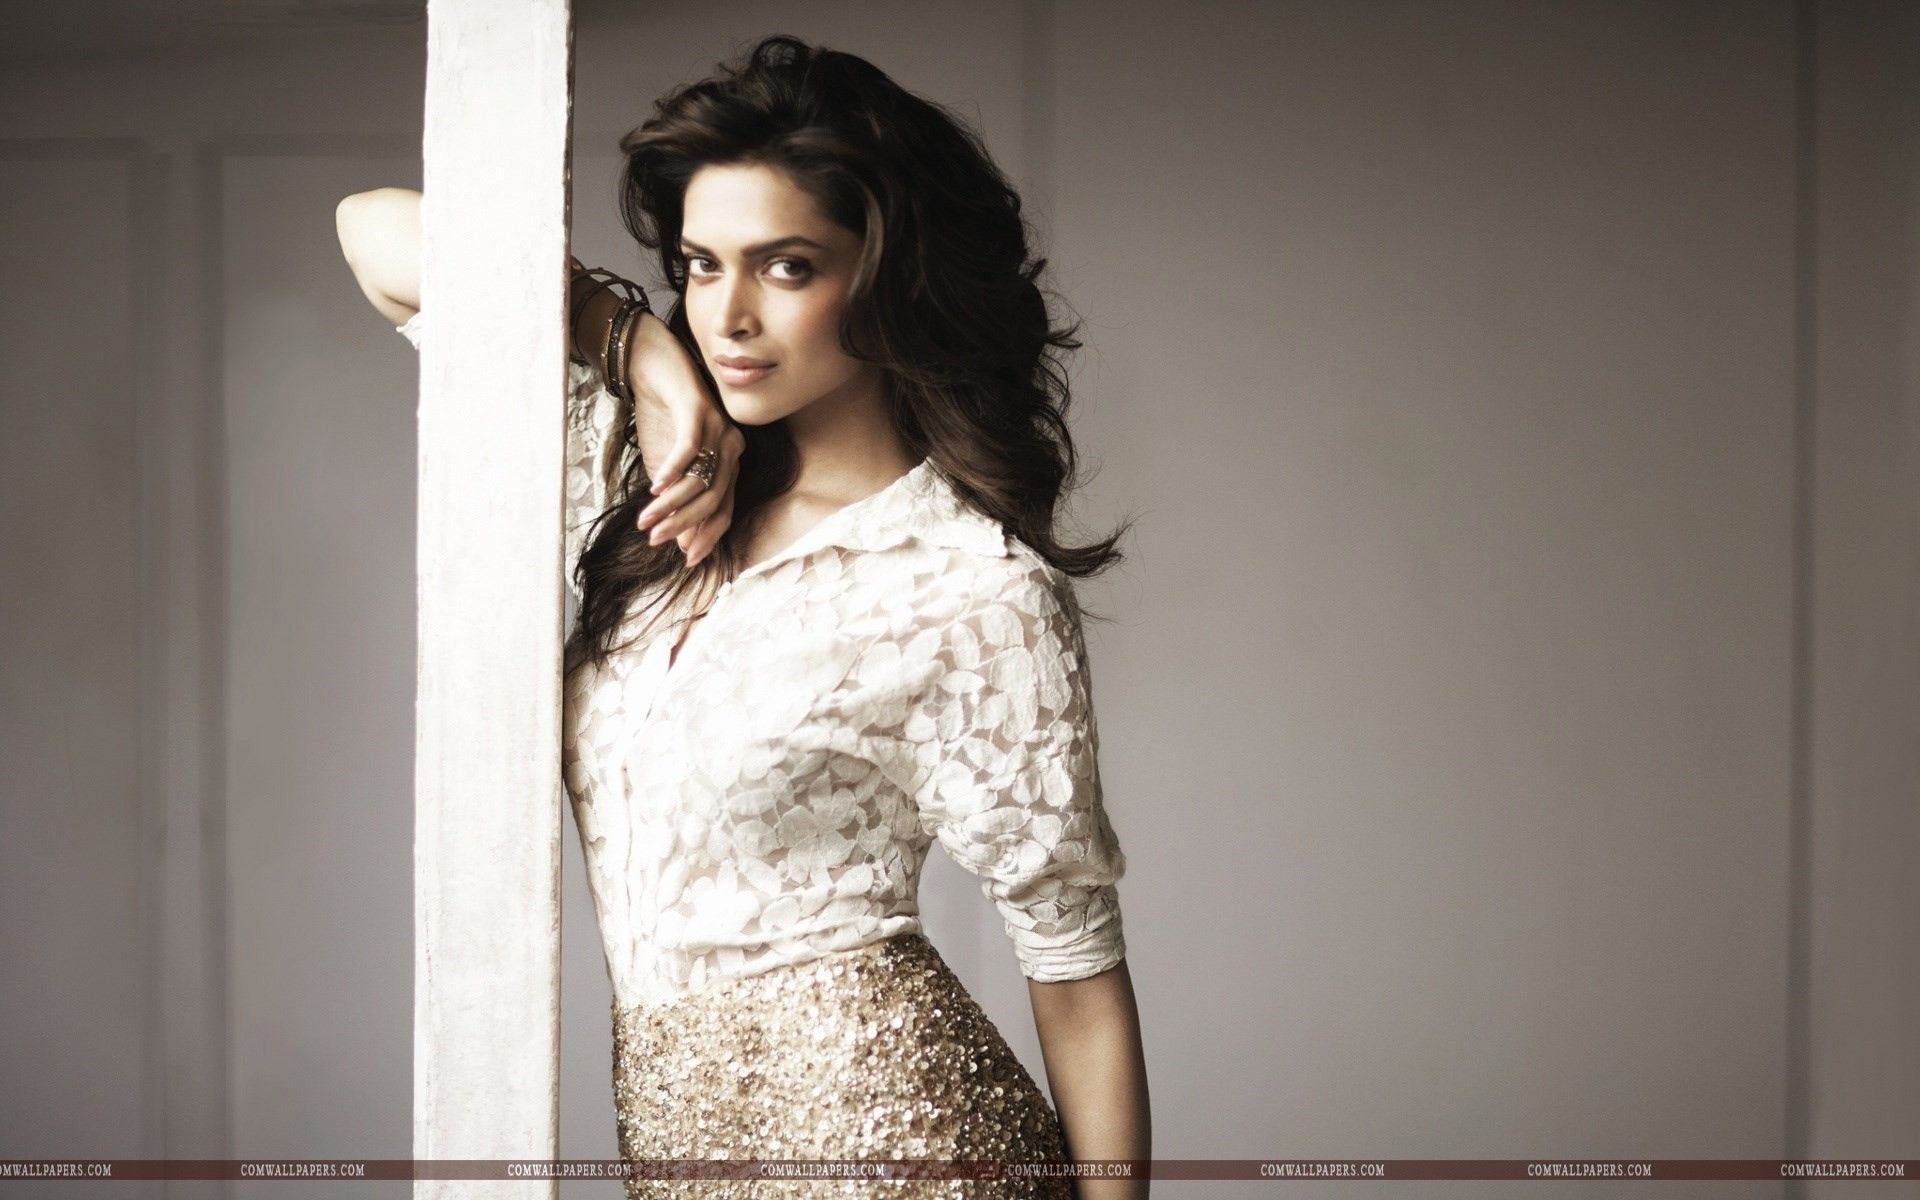 girl deepika padukone hd wallpaper | celebrities hd wallpapers